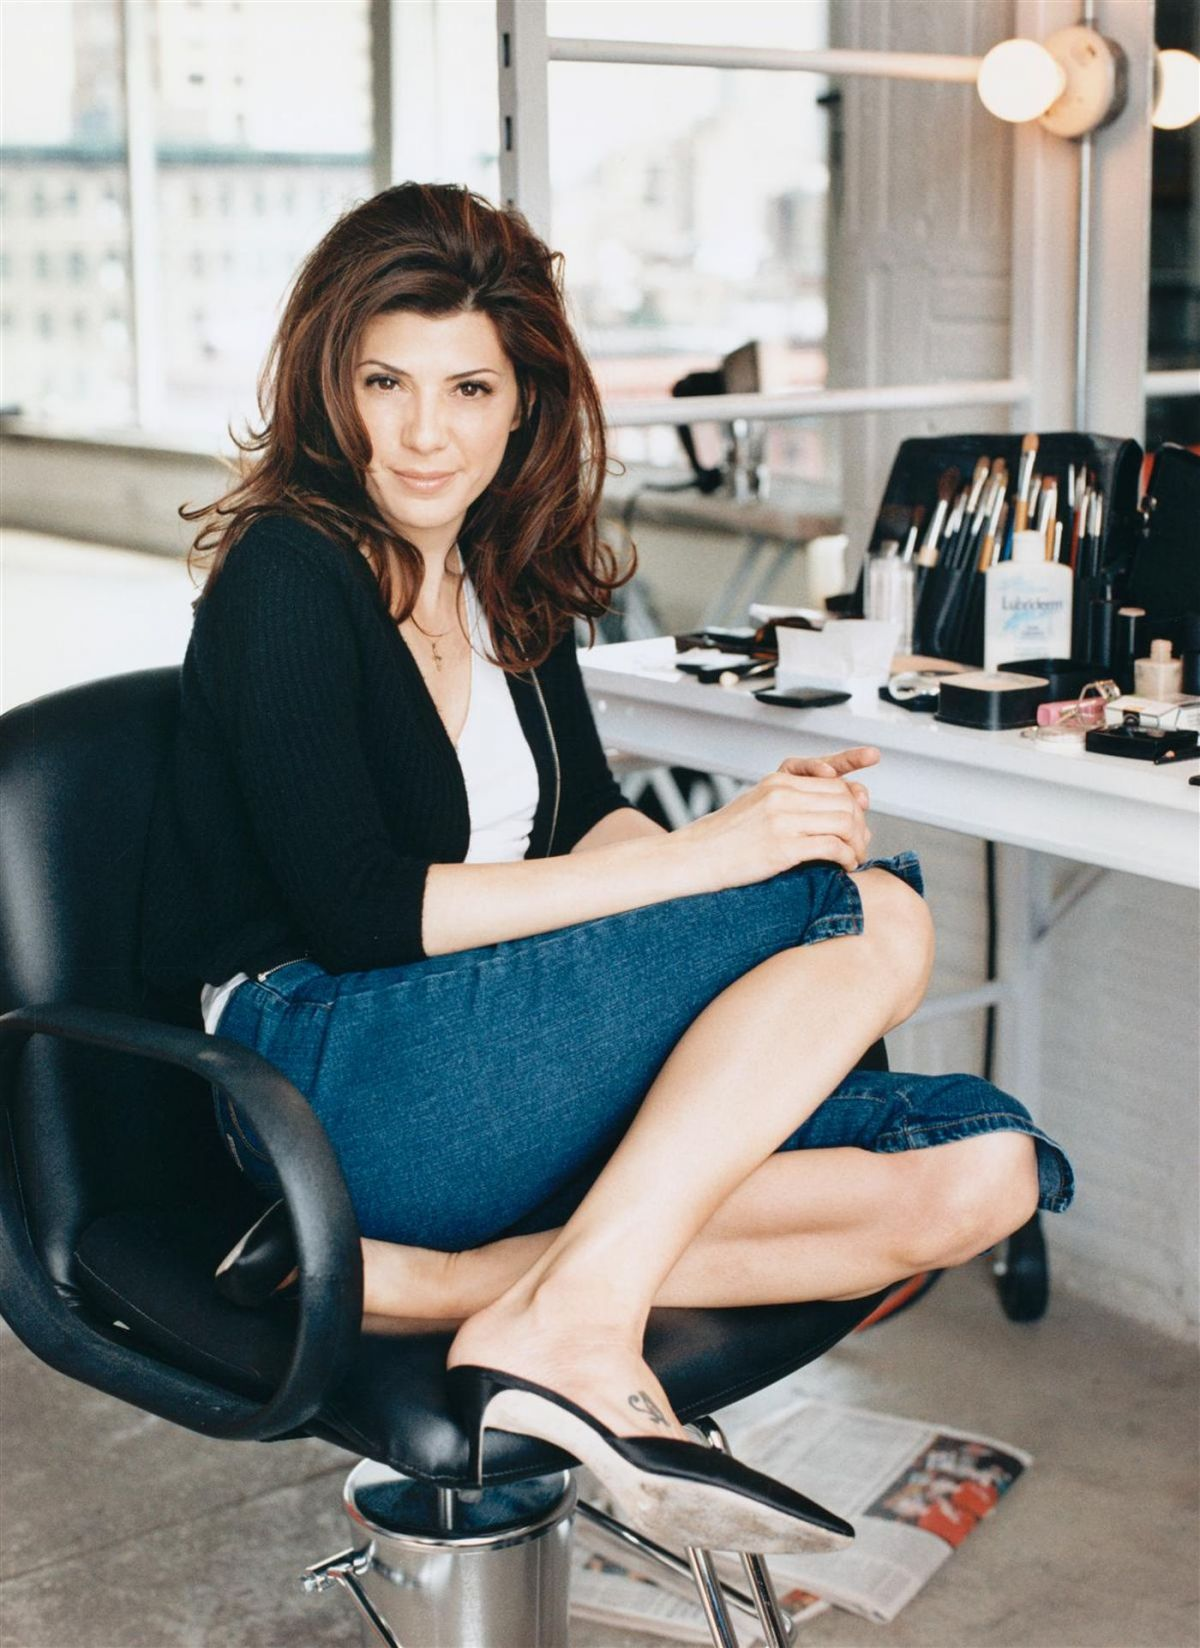 Marisa Tomei - Home | Facebook